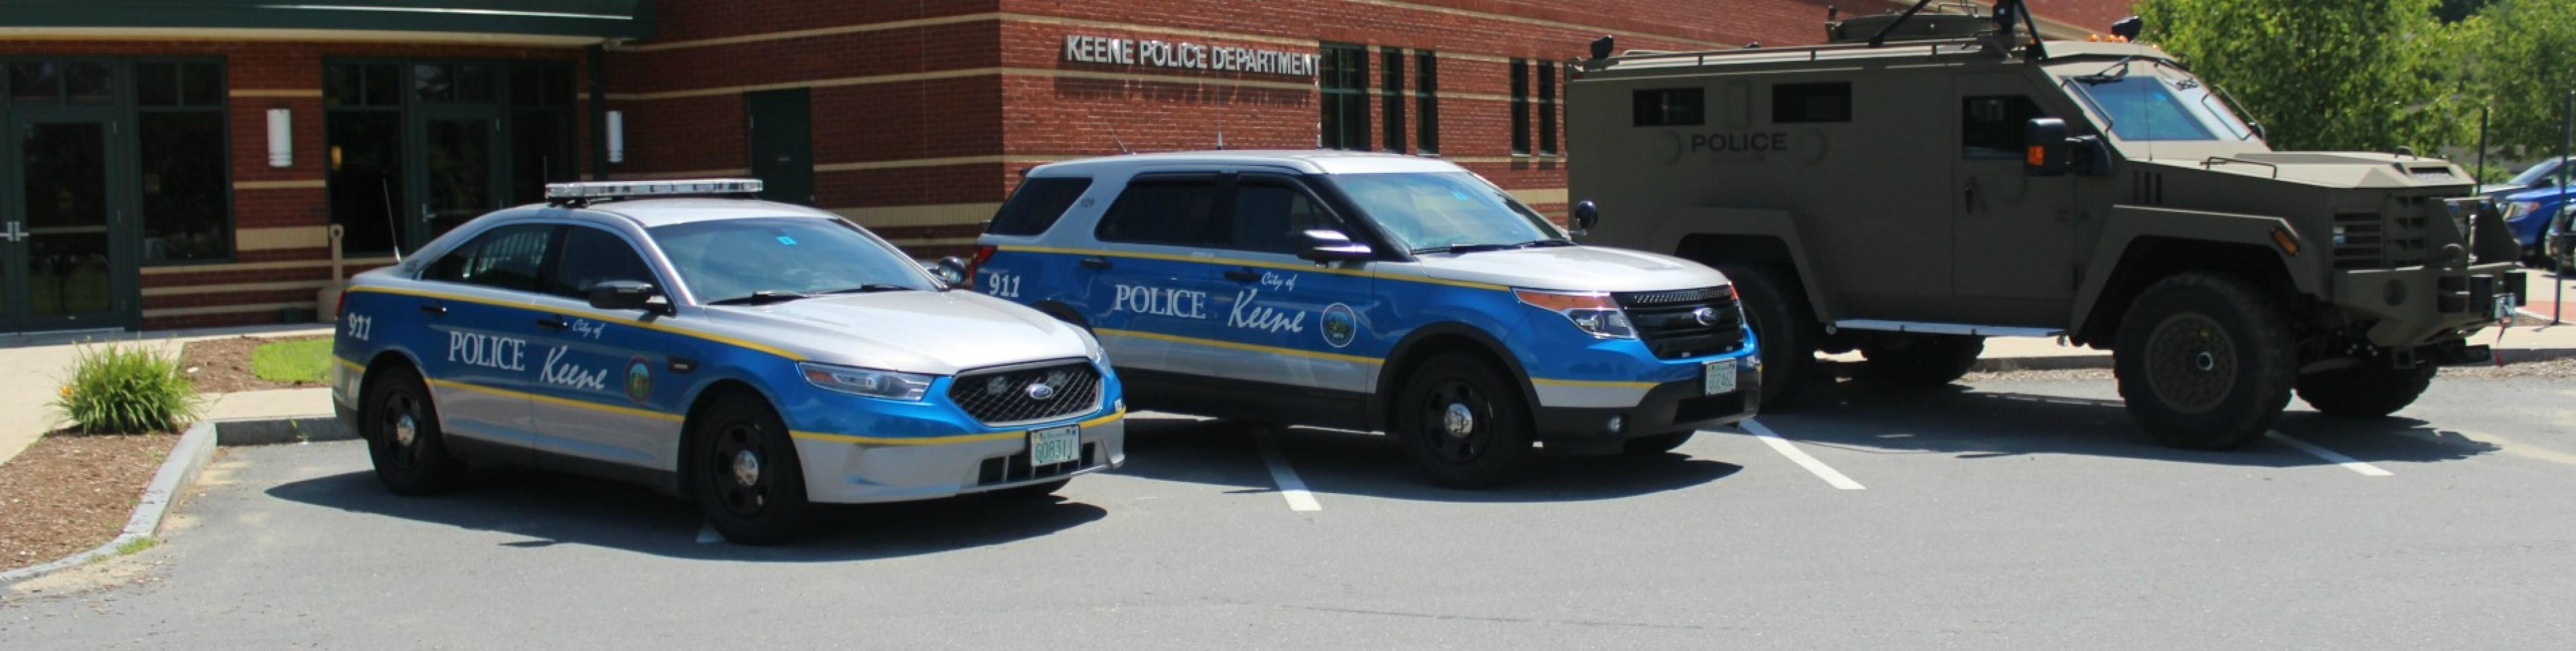 keene police vehicles